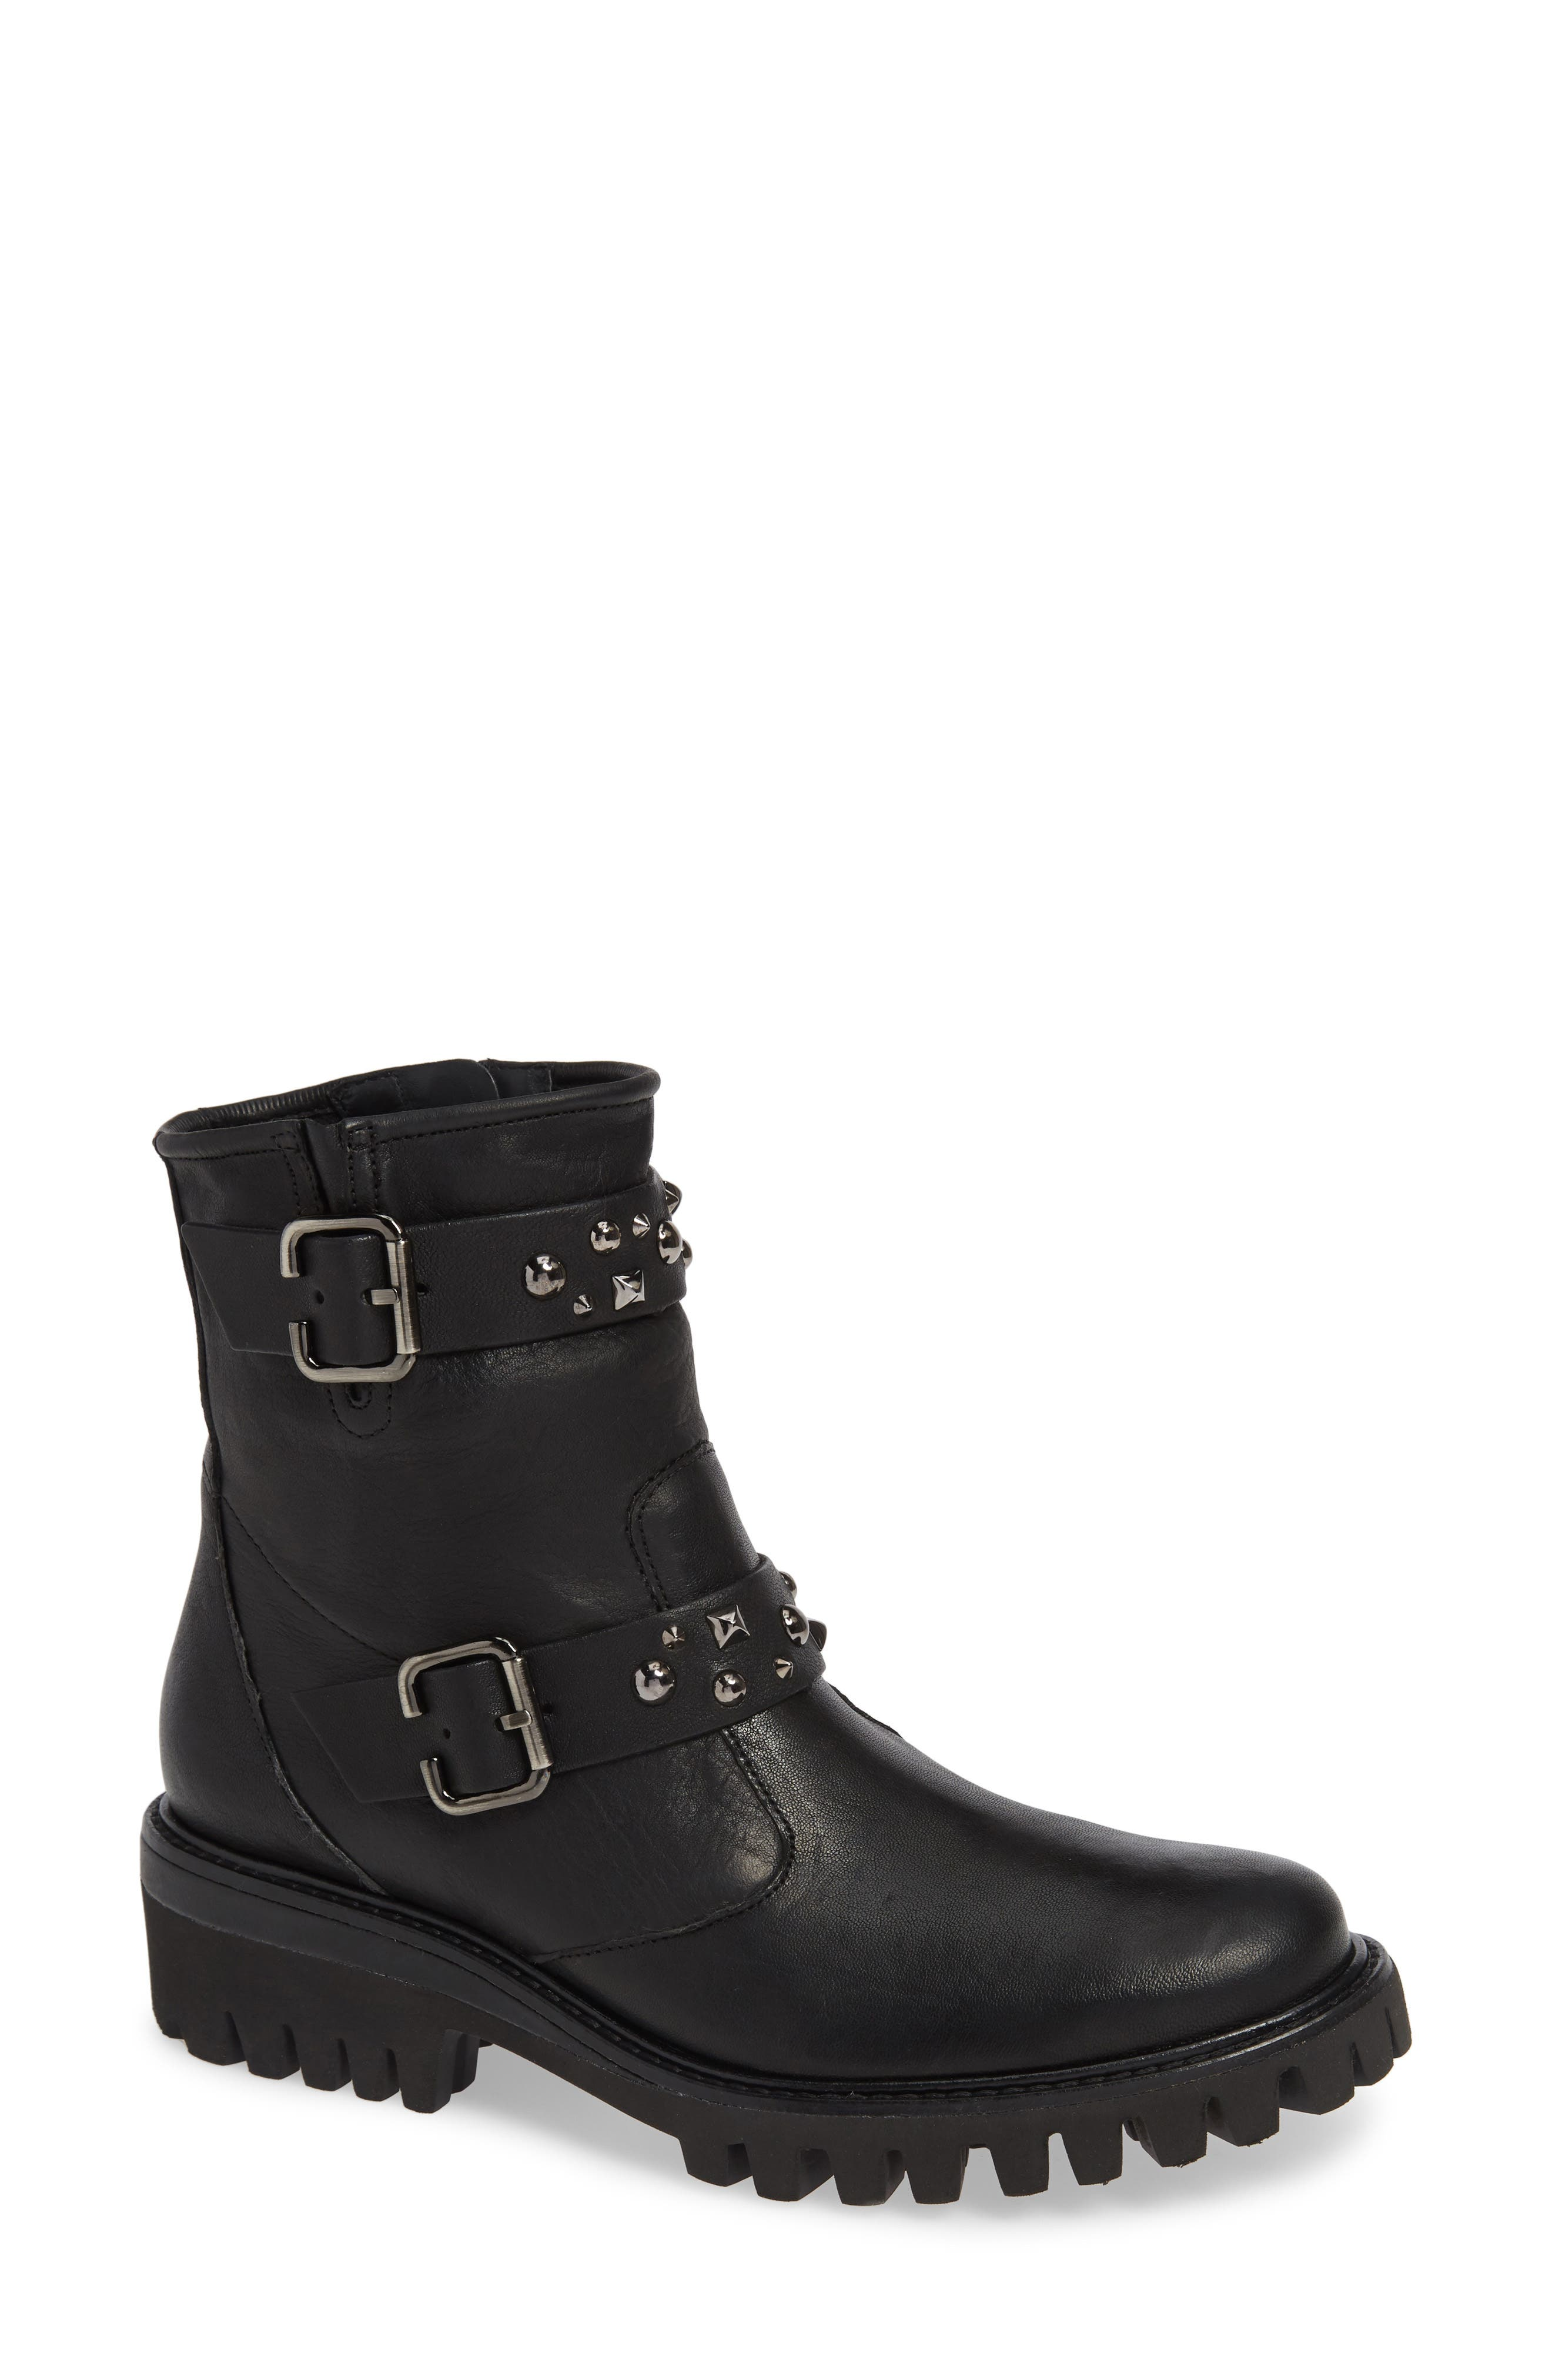 Veronia Studded Buckle Boot,                             Main thumbnail 1, color,                             BLACK LEATHER